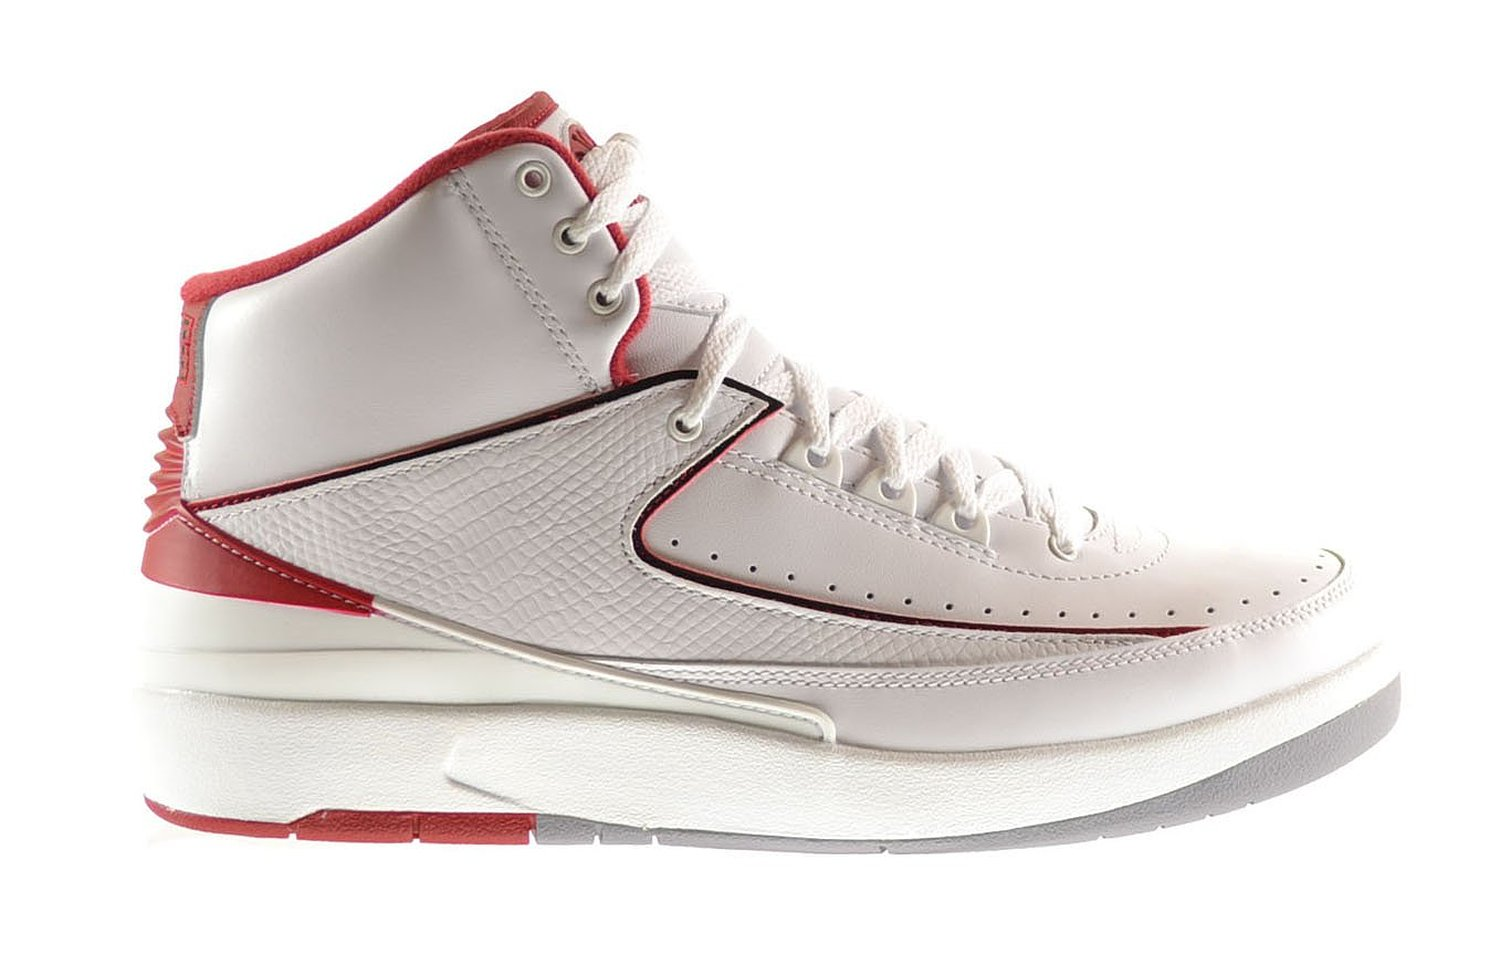 0e39b2a3ec990f Air Jordan 2 Retro Men s Shoes White Black-Varsity Red-Cement Grey 385475